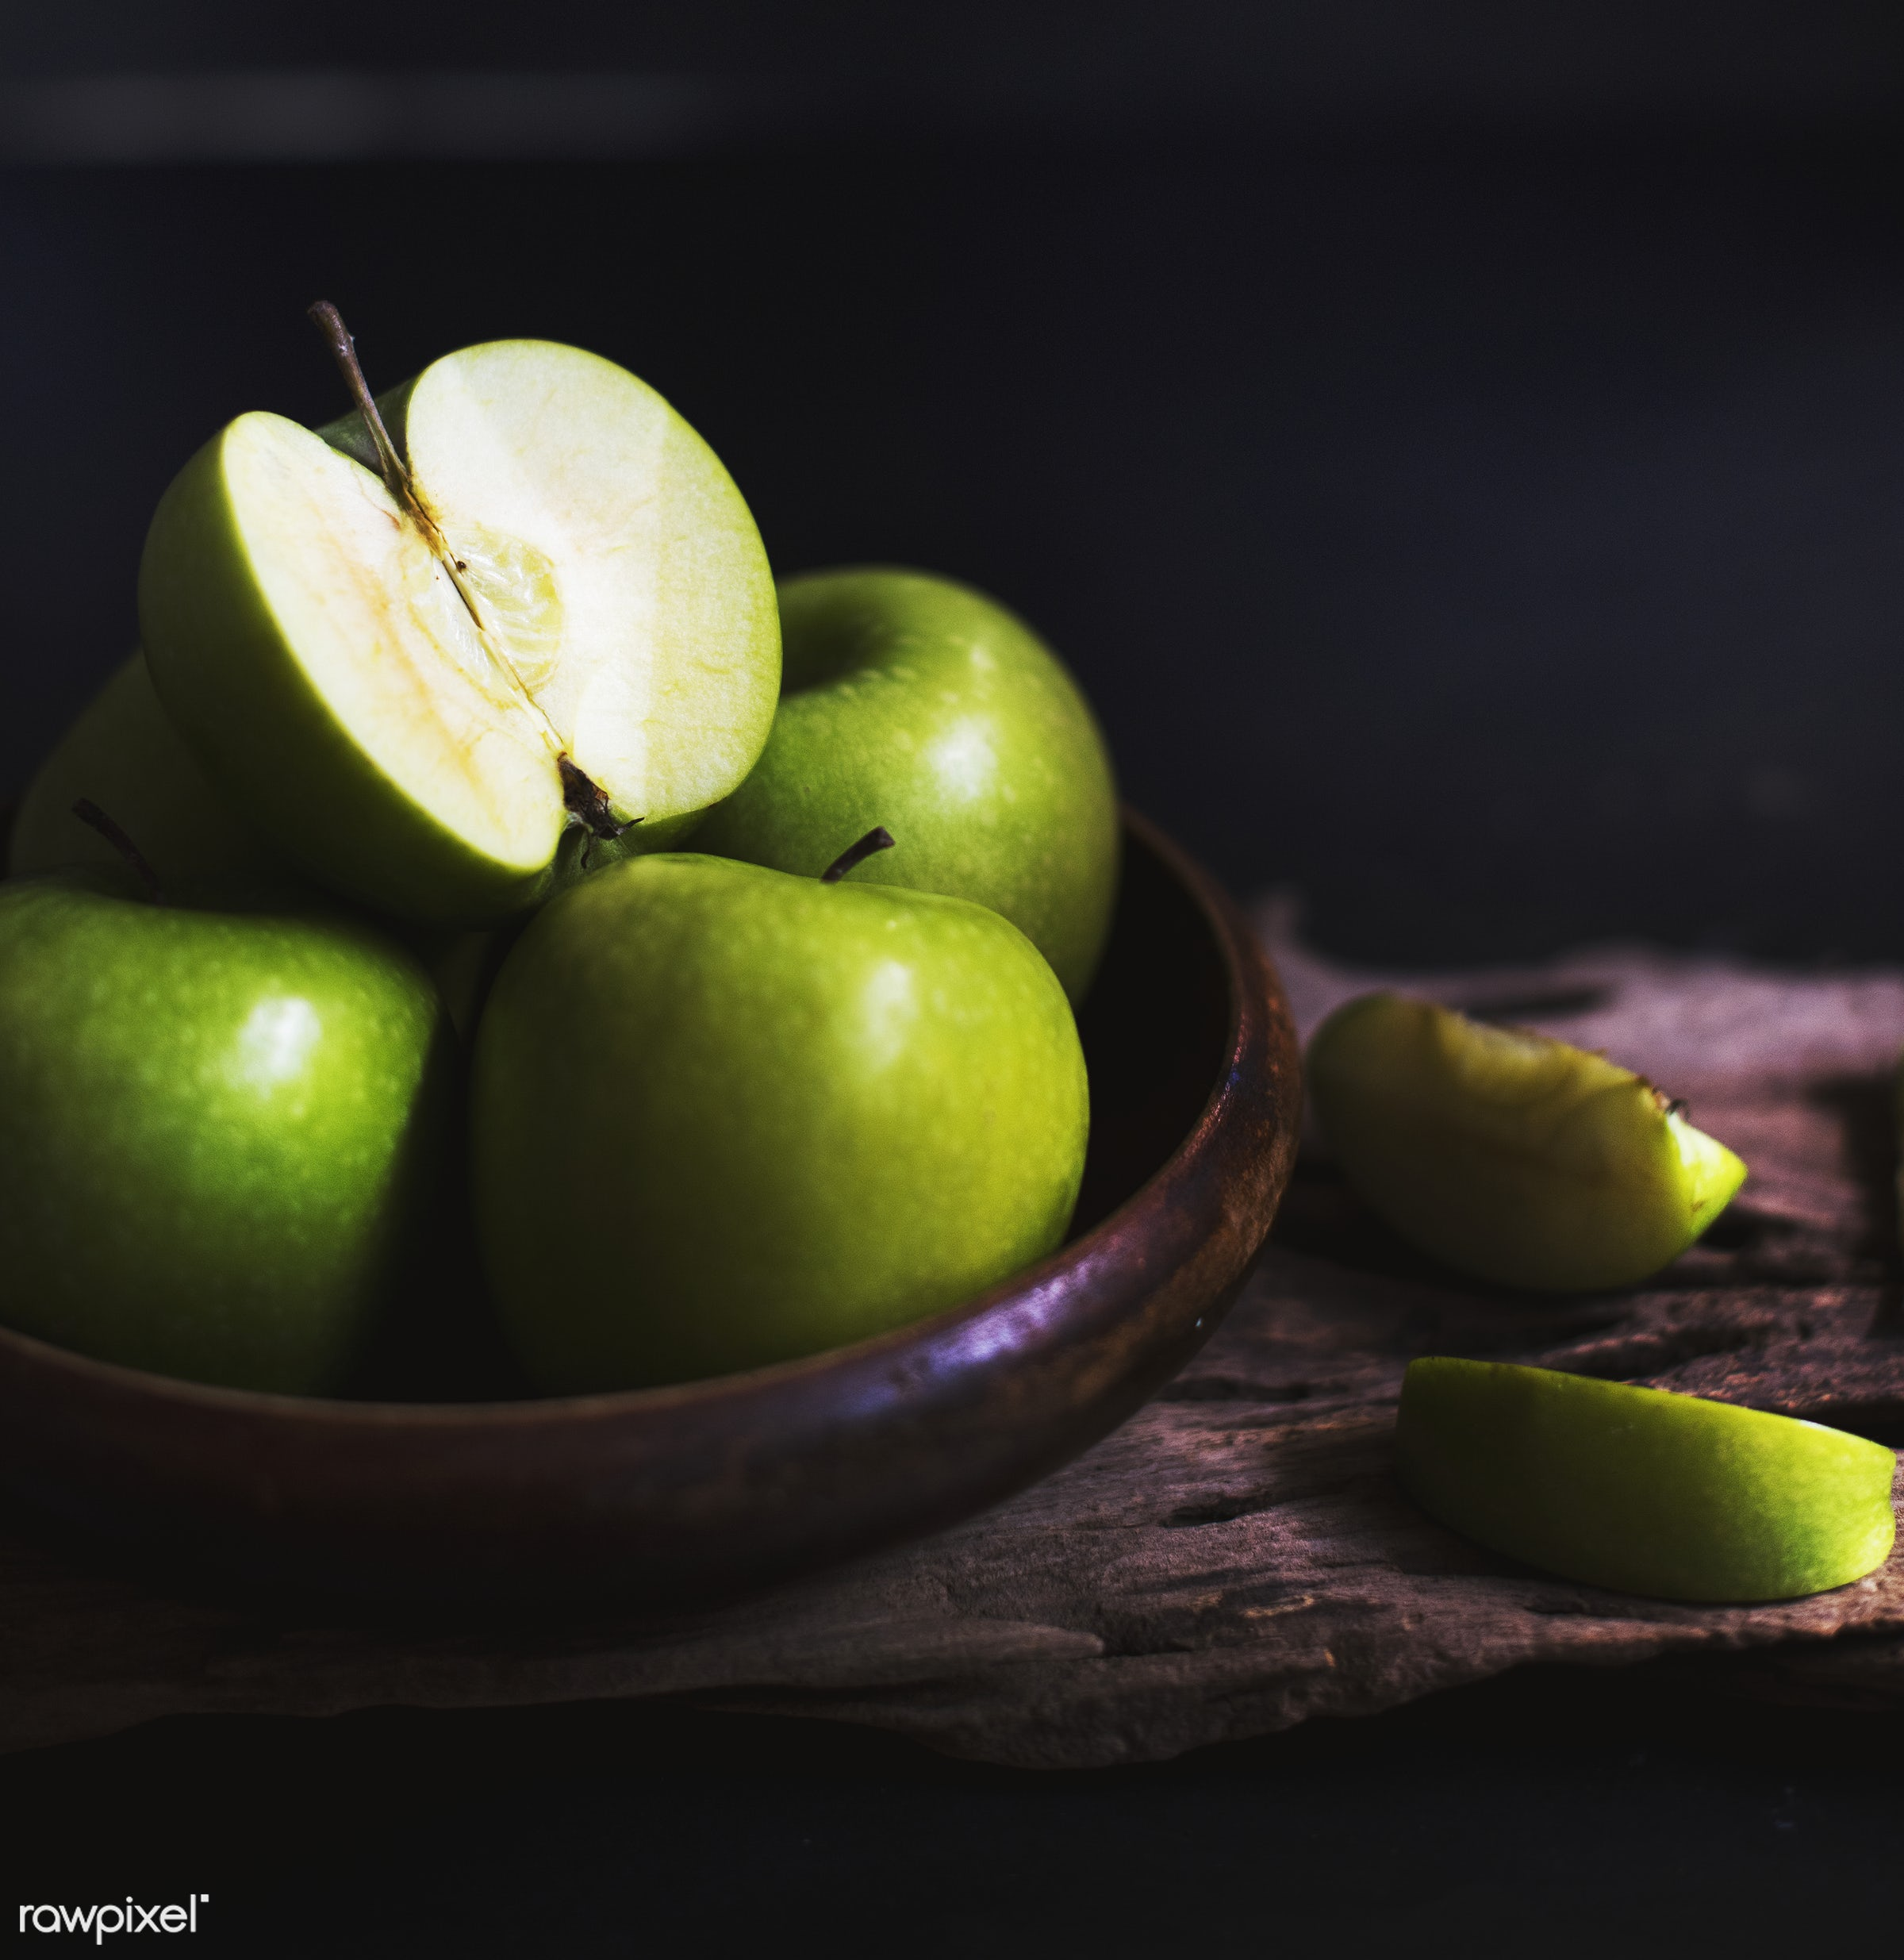 Green apple in a plate - raw, nobody, black background, nature, fresh, apples, products, closeup, fruit, green, agriculture...